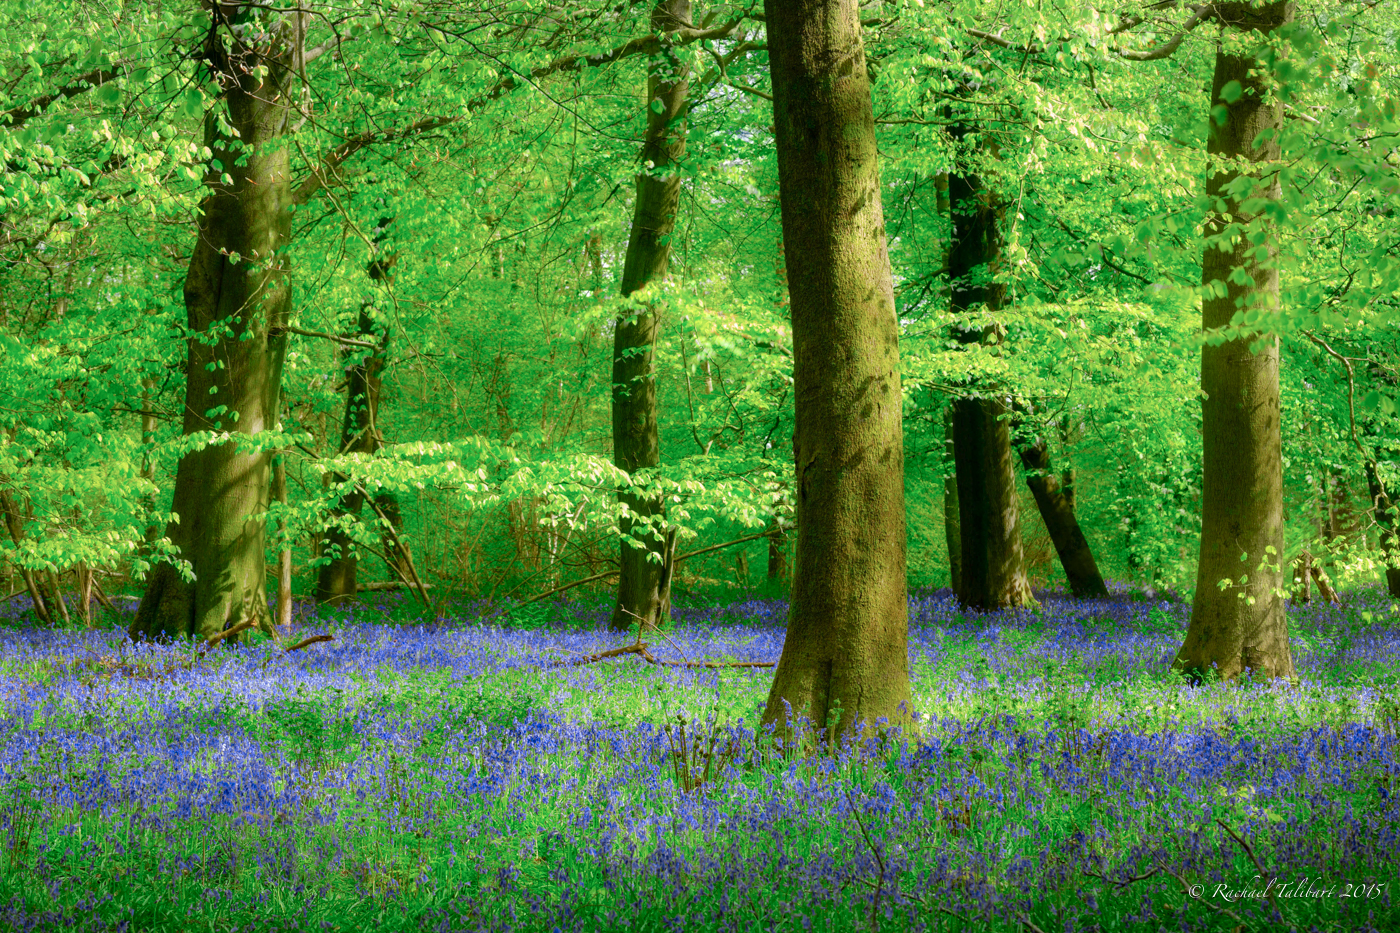 Bluebells at White Down